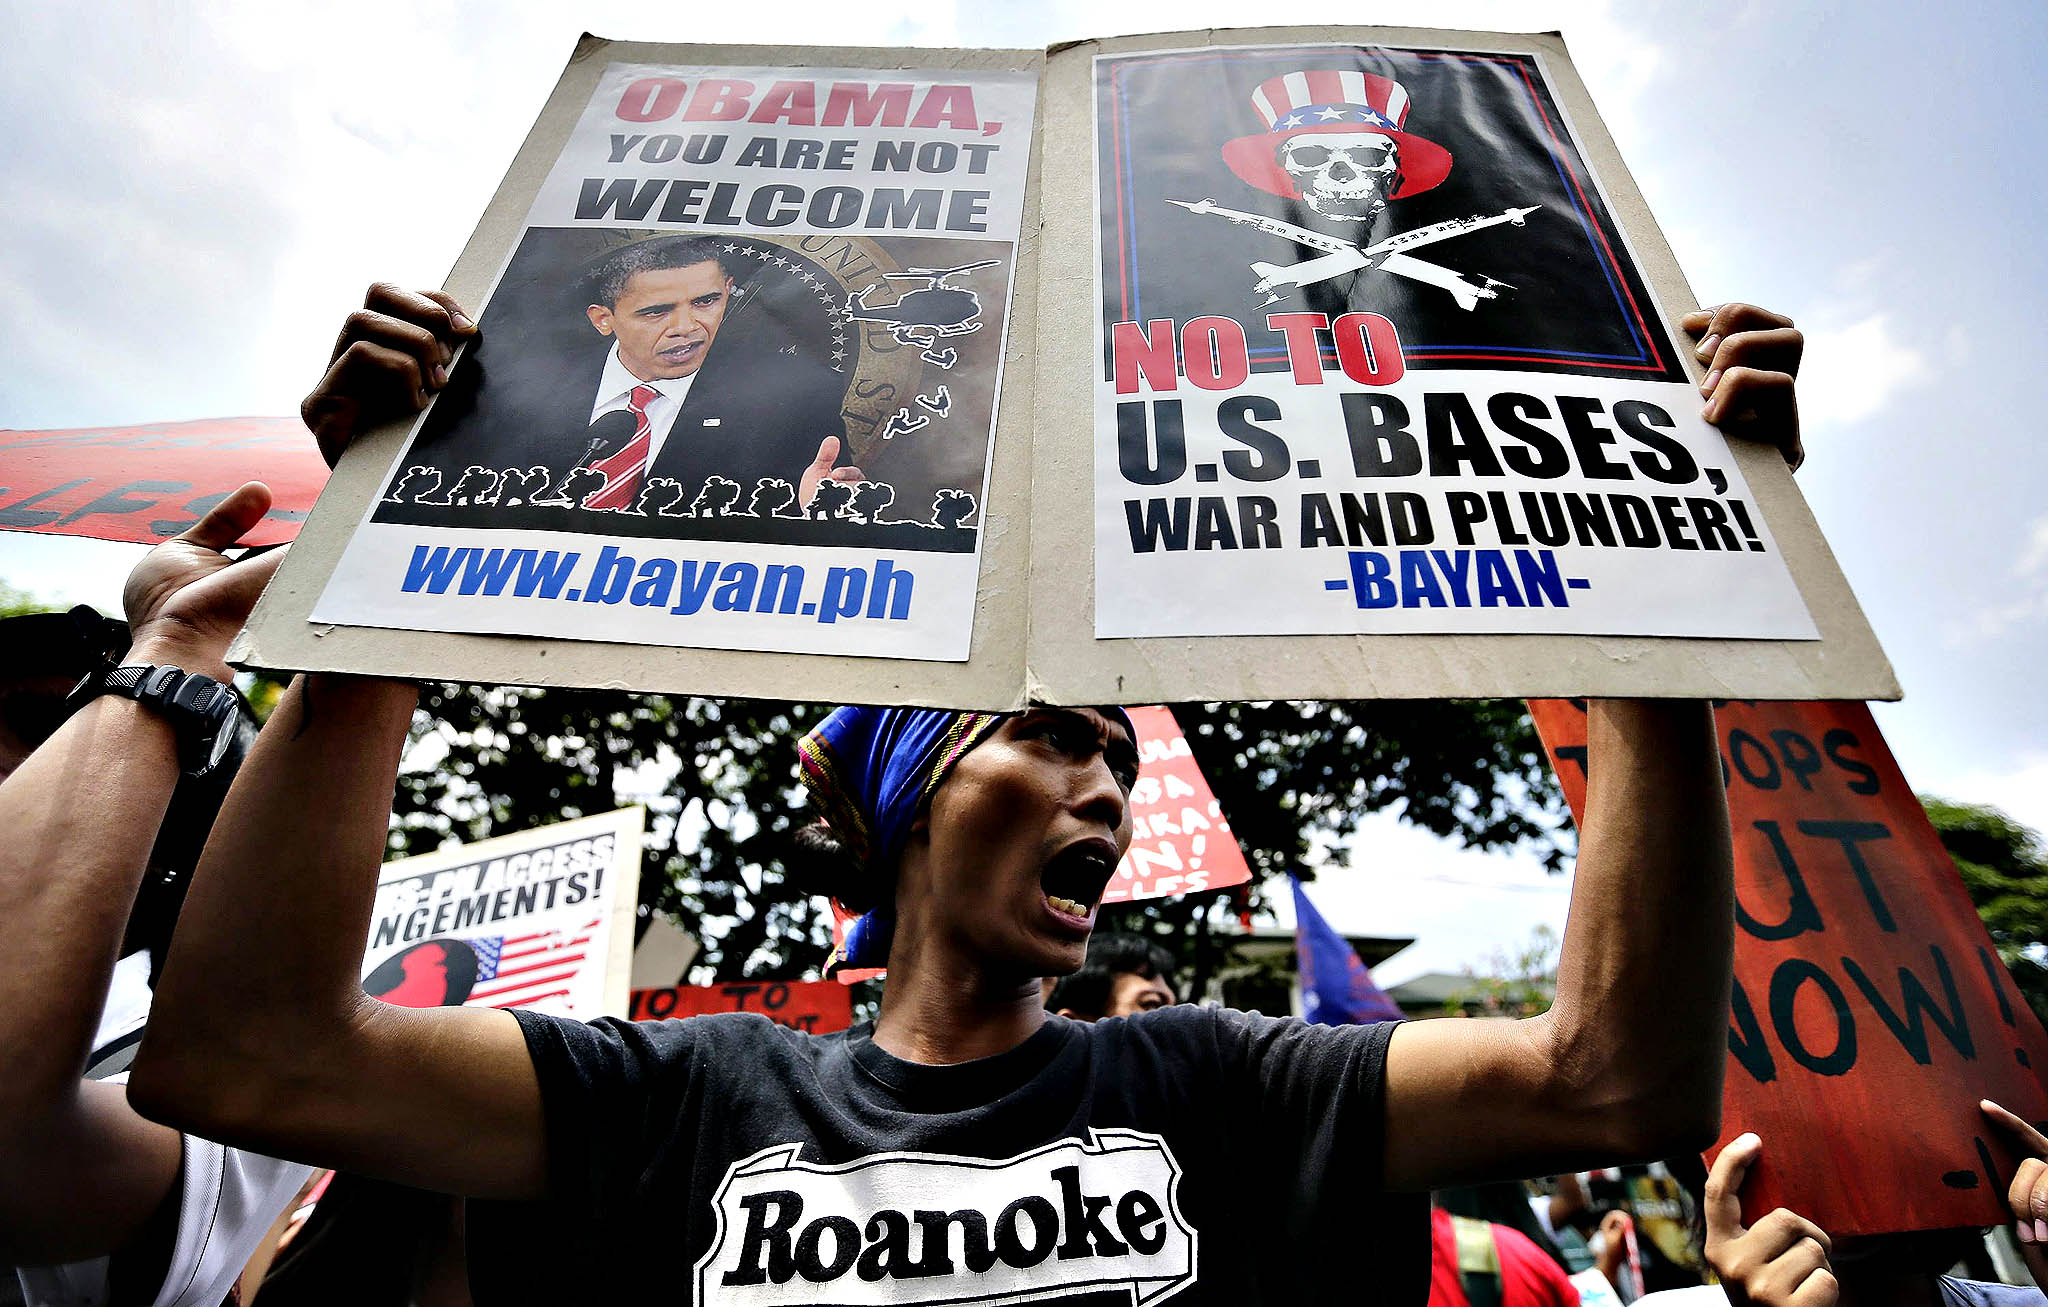 A Filipino student shouts anti-US slogans outside the US embassy in Manila, Philippines, 21 March 2014 in a rally condemning the docking of the USS Blue Ridge and the upcoming visit of US President Barack Obama to the country. Activists also called for an end to the presence of US troops in the country and the Visiting Forces Agreement (VFA). Obama is to visit Japan, South Korea, Malaysia and the Philippines in late April. The trip is part of his efforts to broaden US engagement in the Asia-Pacific region on all fronts, from strategic security issues to trade and diplomacy. Obama had originally planned an Asia trip for late 2013, but was forced to cancel during the budget and debt limit crisis that closed the US government for more than two weeks in October.